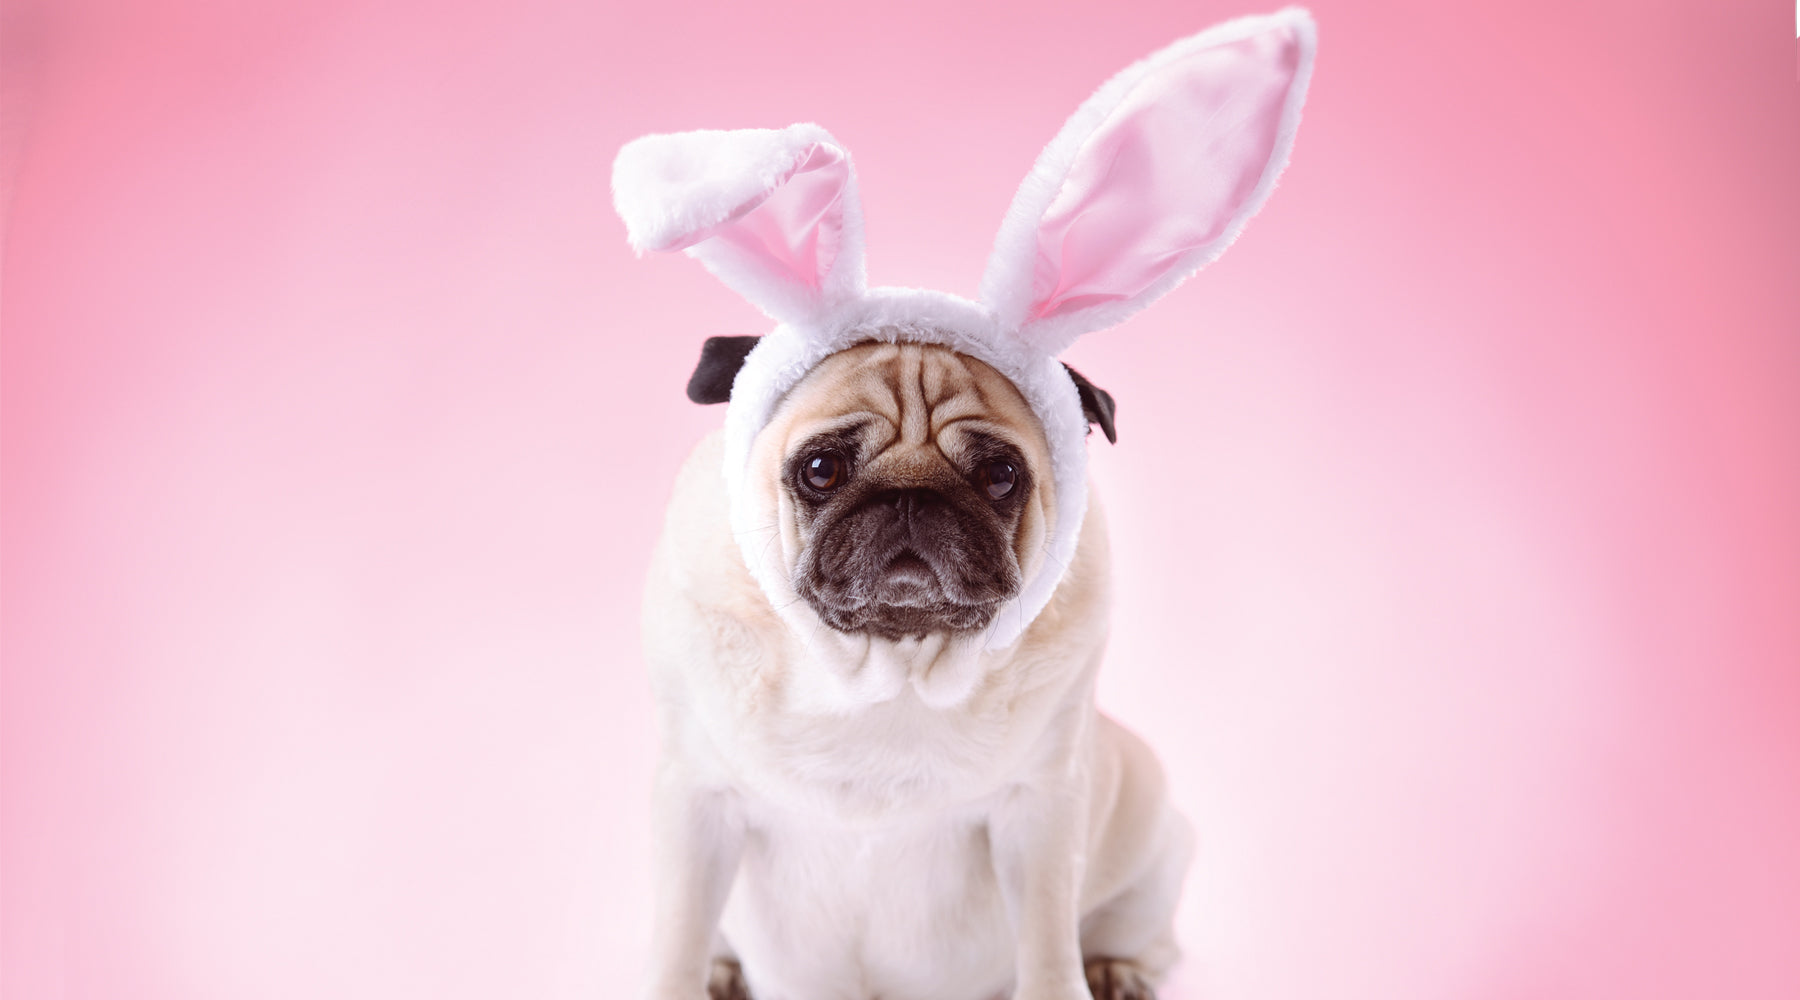 Pug dressed up with bunny ears